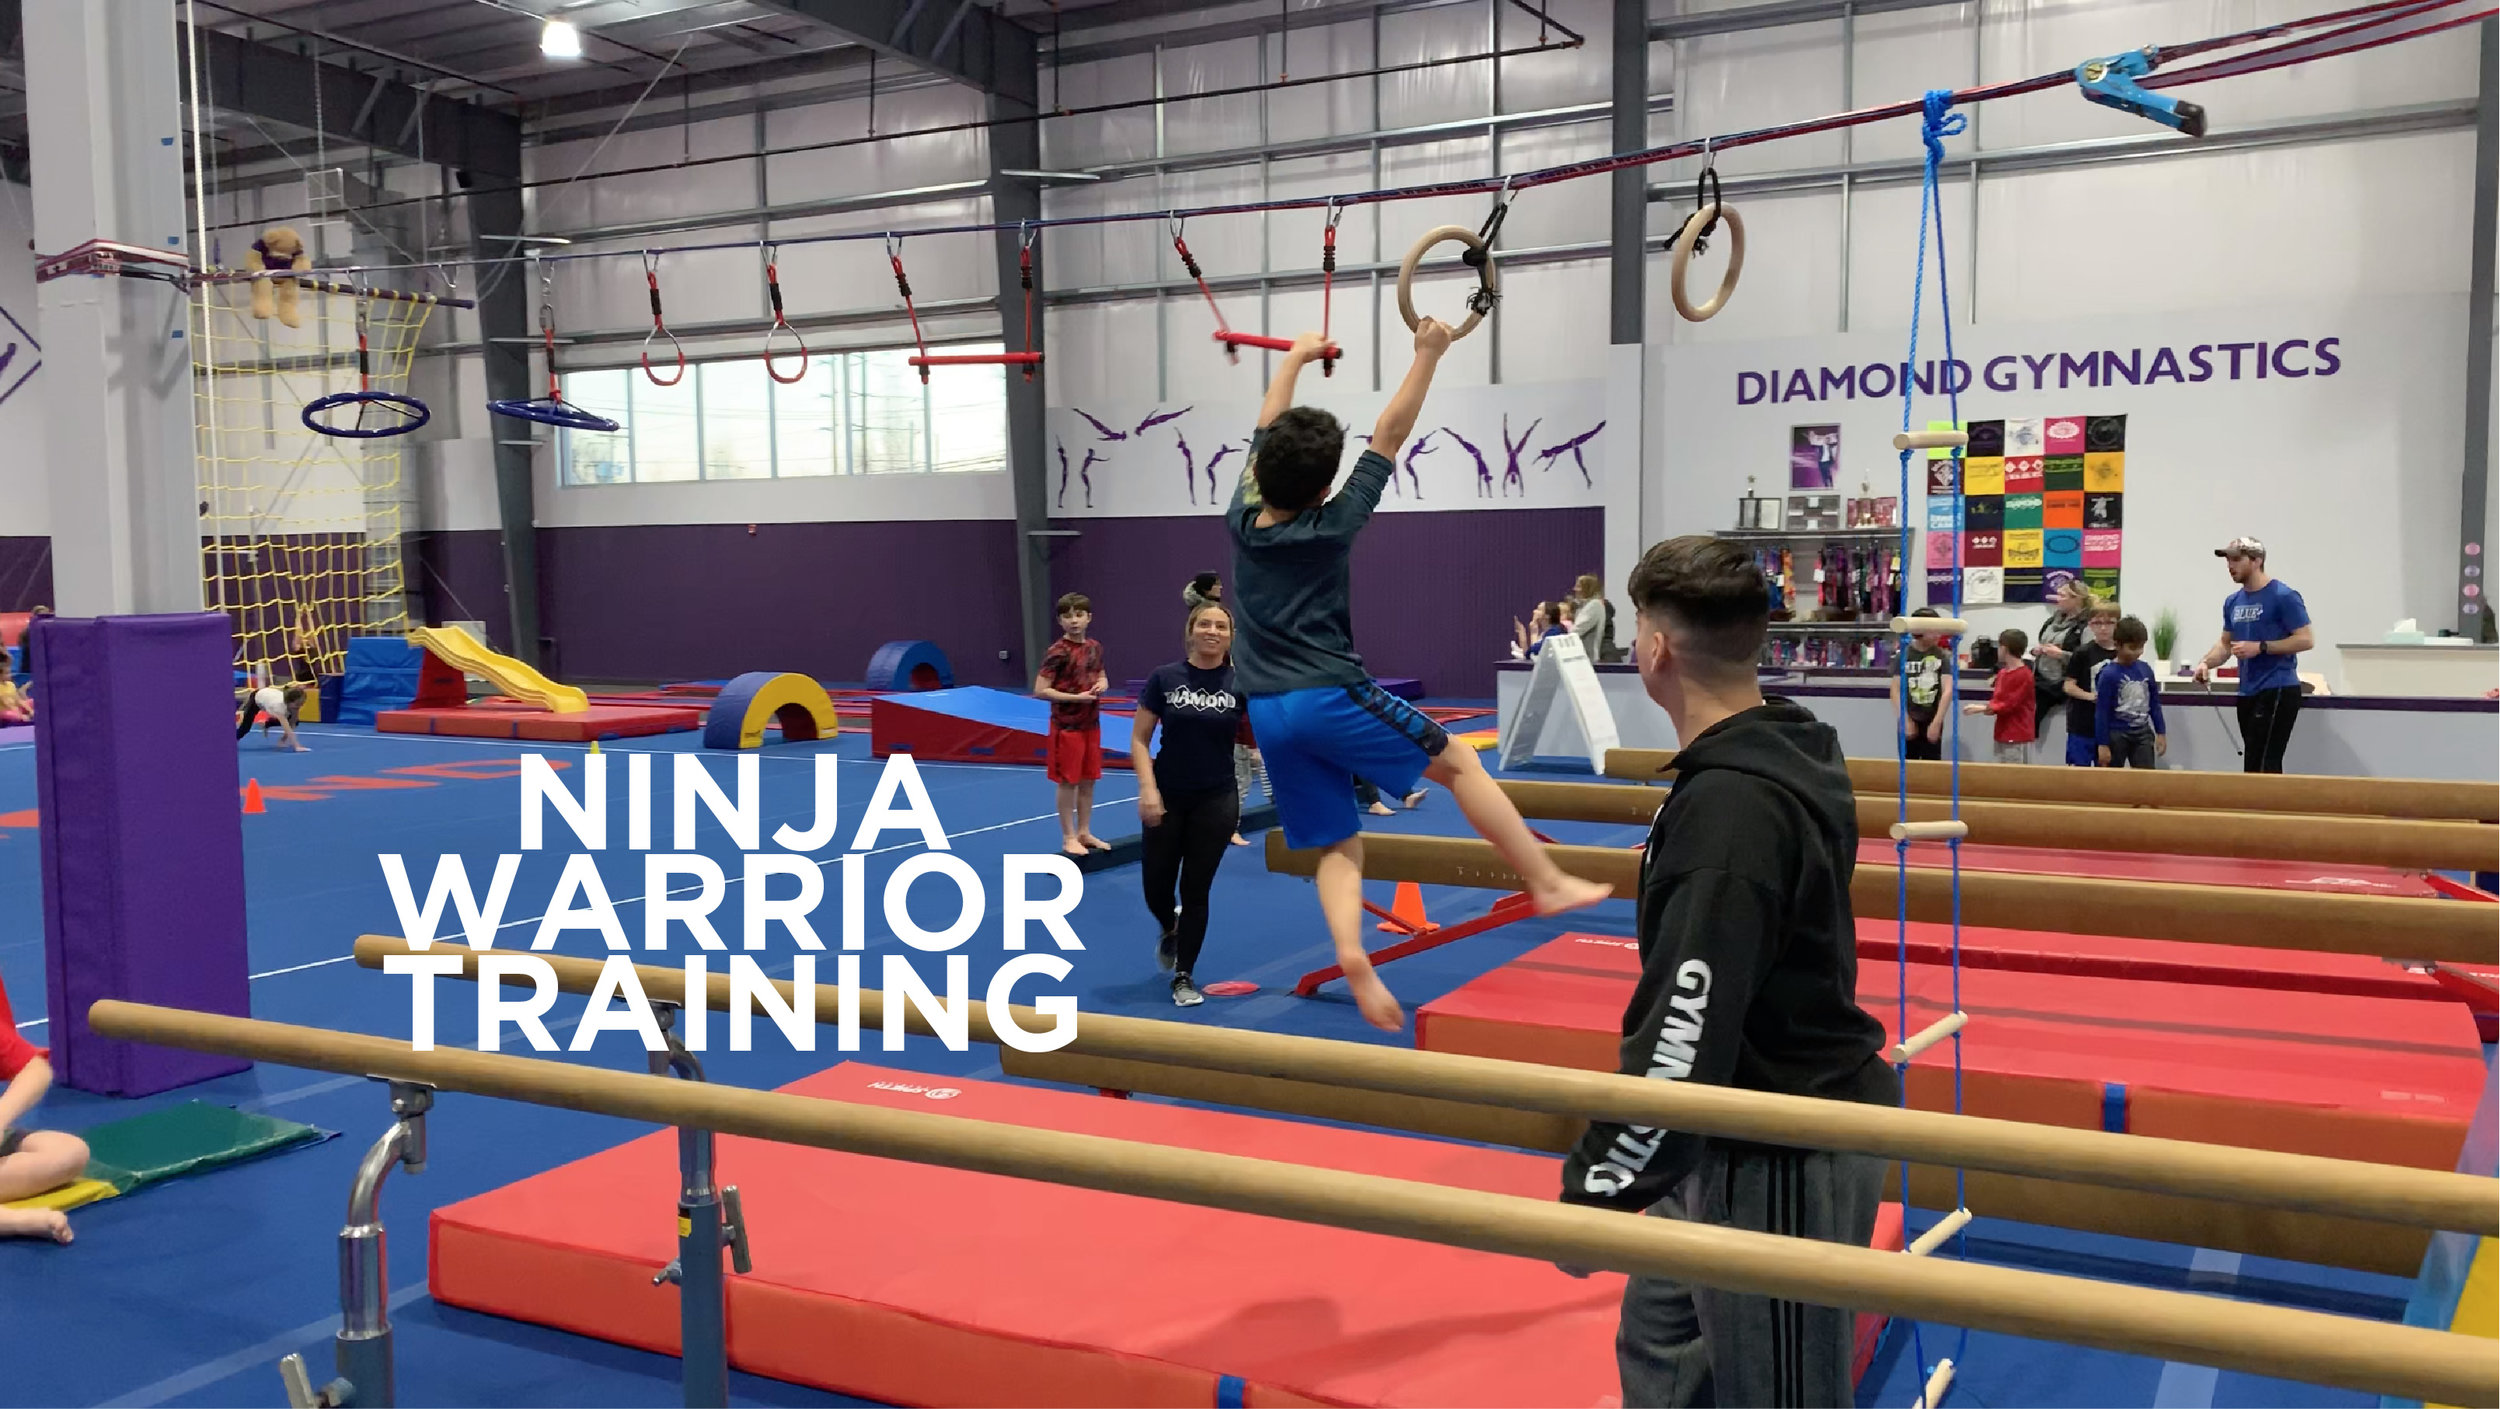 NINJA WARRIOR - Co-led by both Diamond and Precision Sports Performance coaches, our incredible program incorporates all elements of our uniquely specialized facility to transform your kids into ninjas in a safe and fun environment.Click HERE to enroll today!